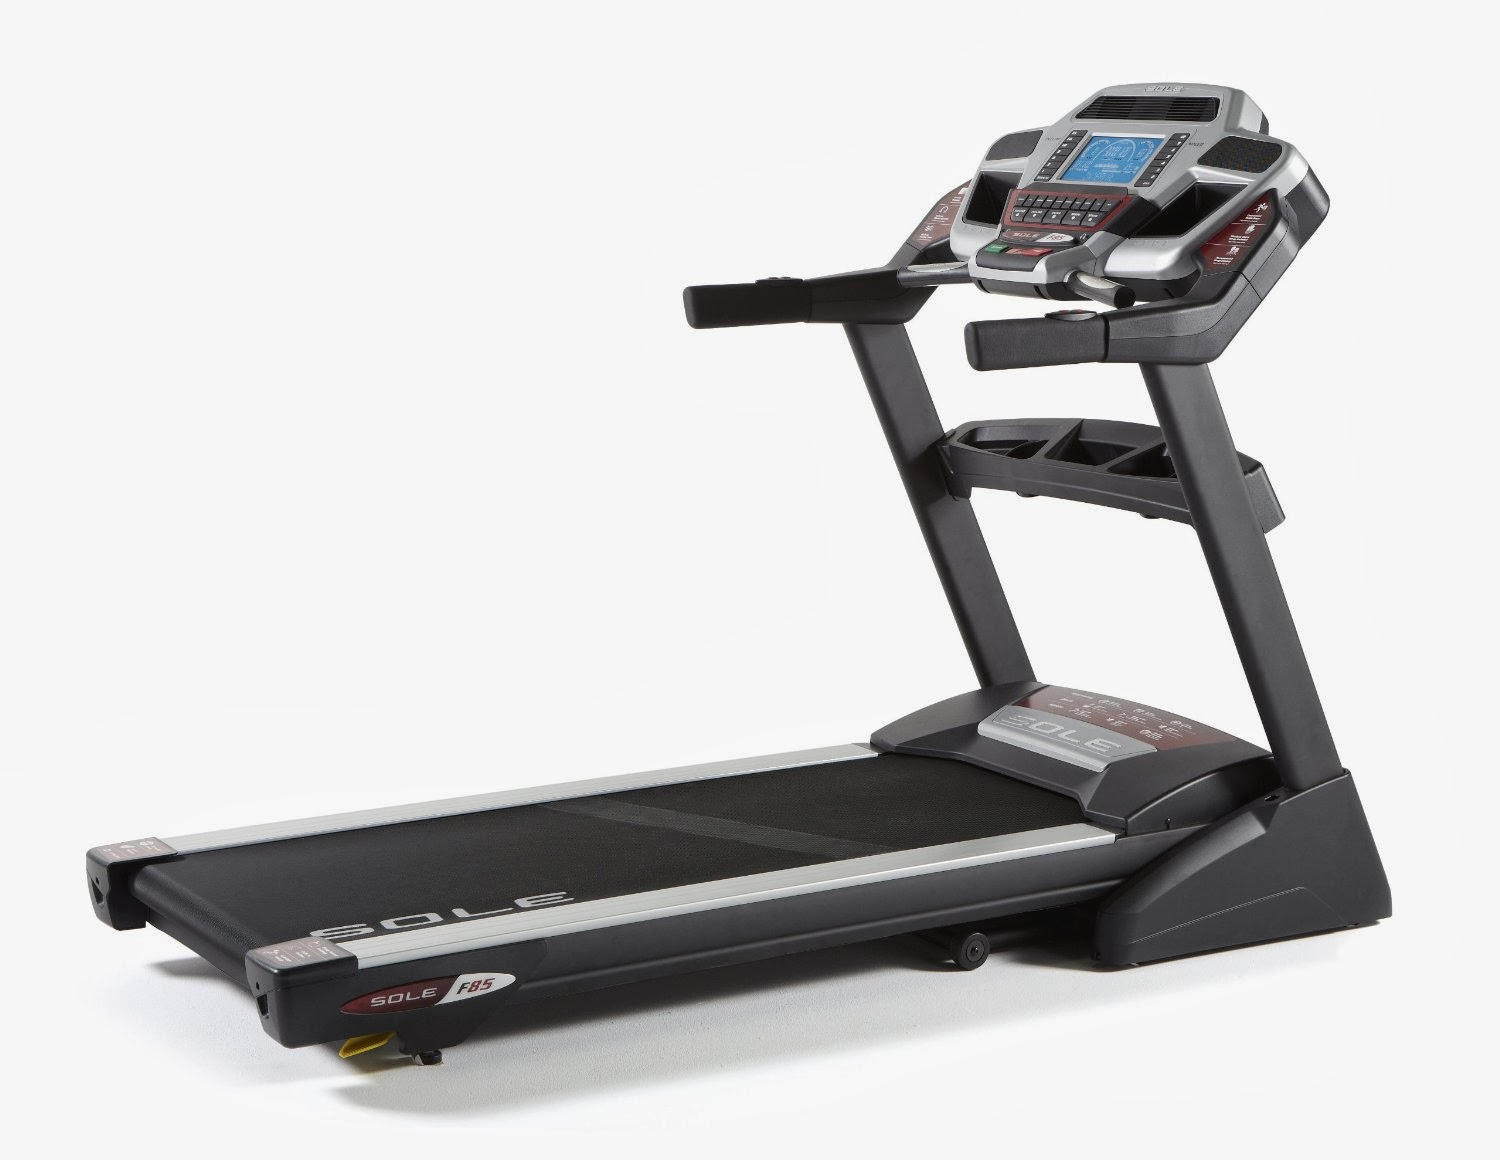 Sole Fitness F85 Folding Treadmill, picture, review features & specifications